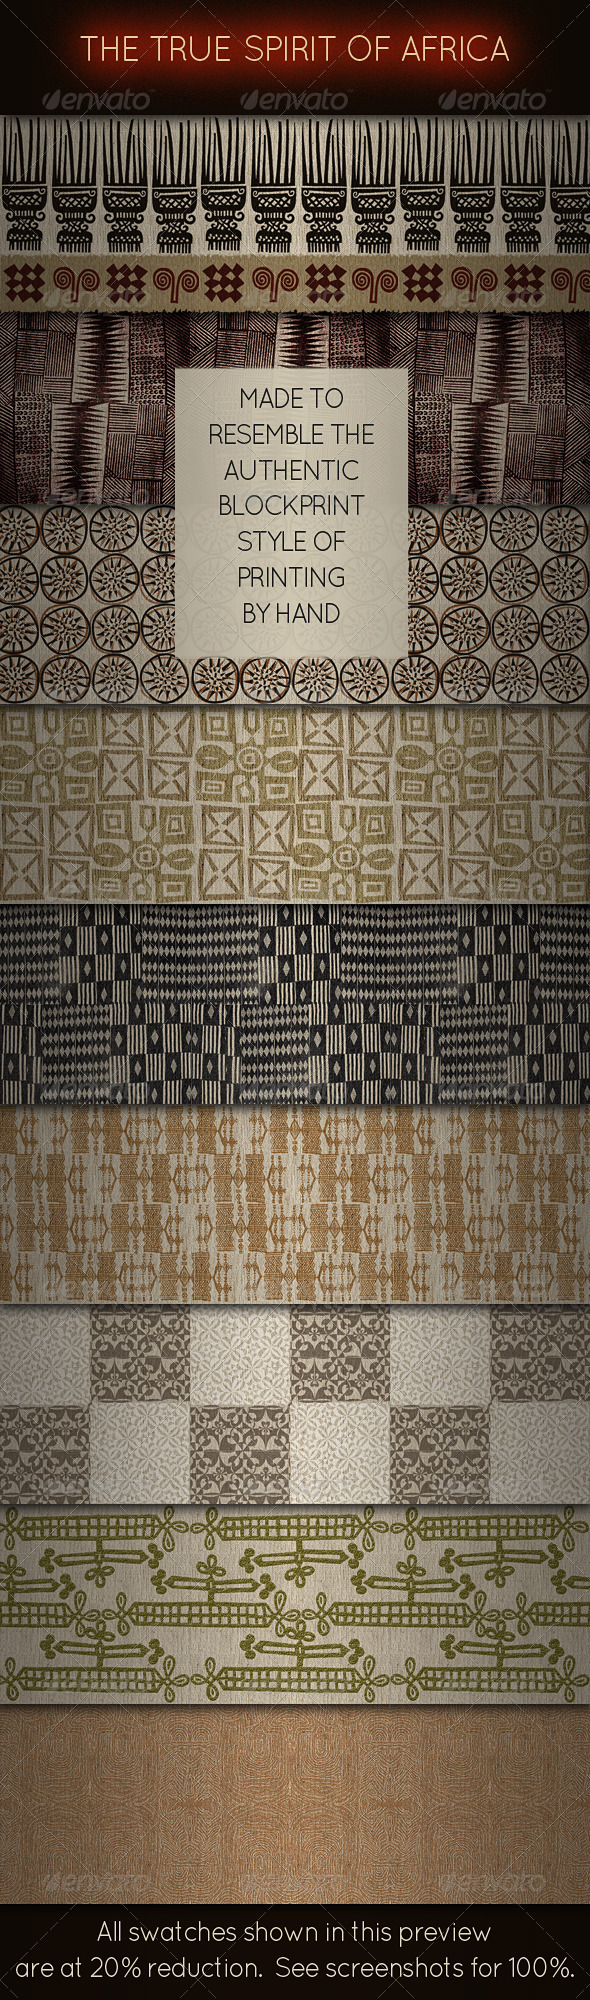 African Ethnic Fabric Designs - Blockprint Style - Fabric Textures